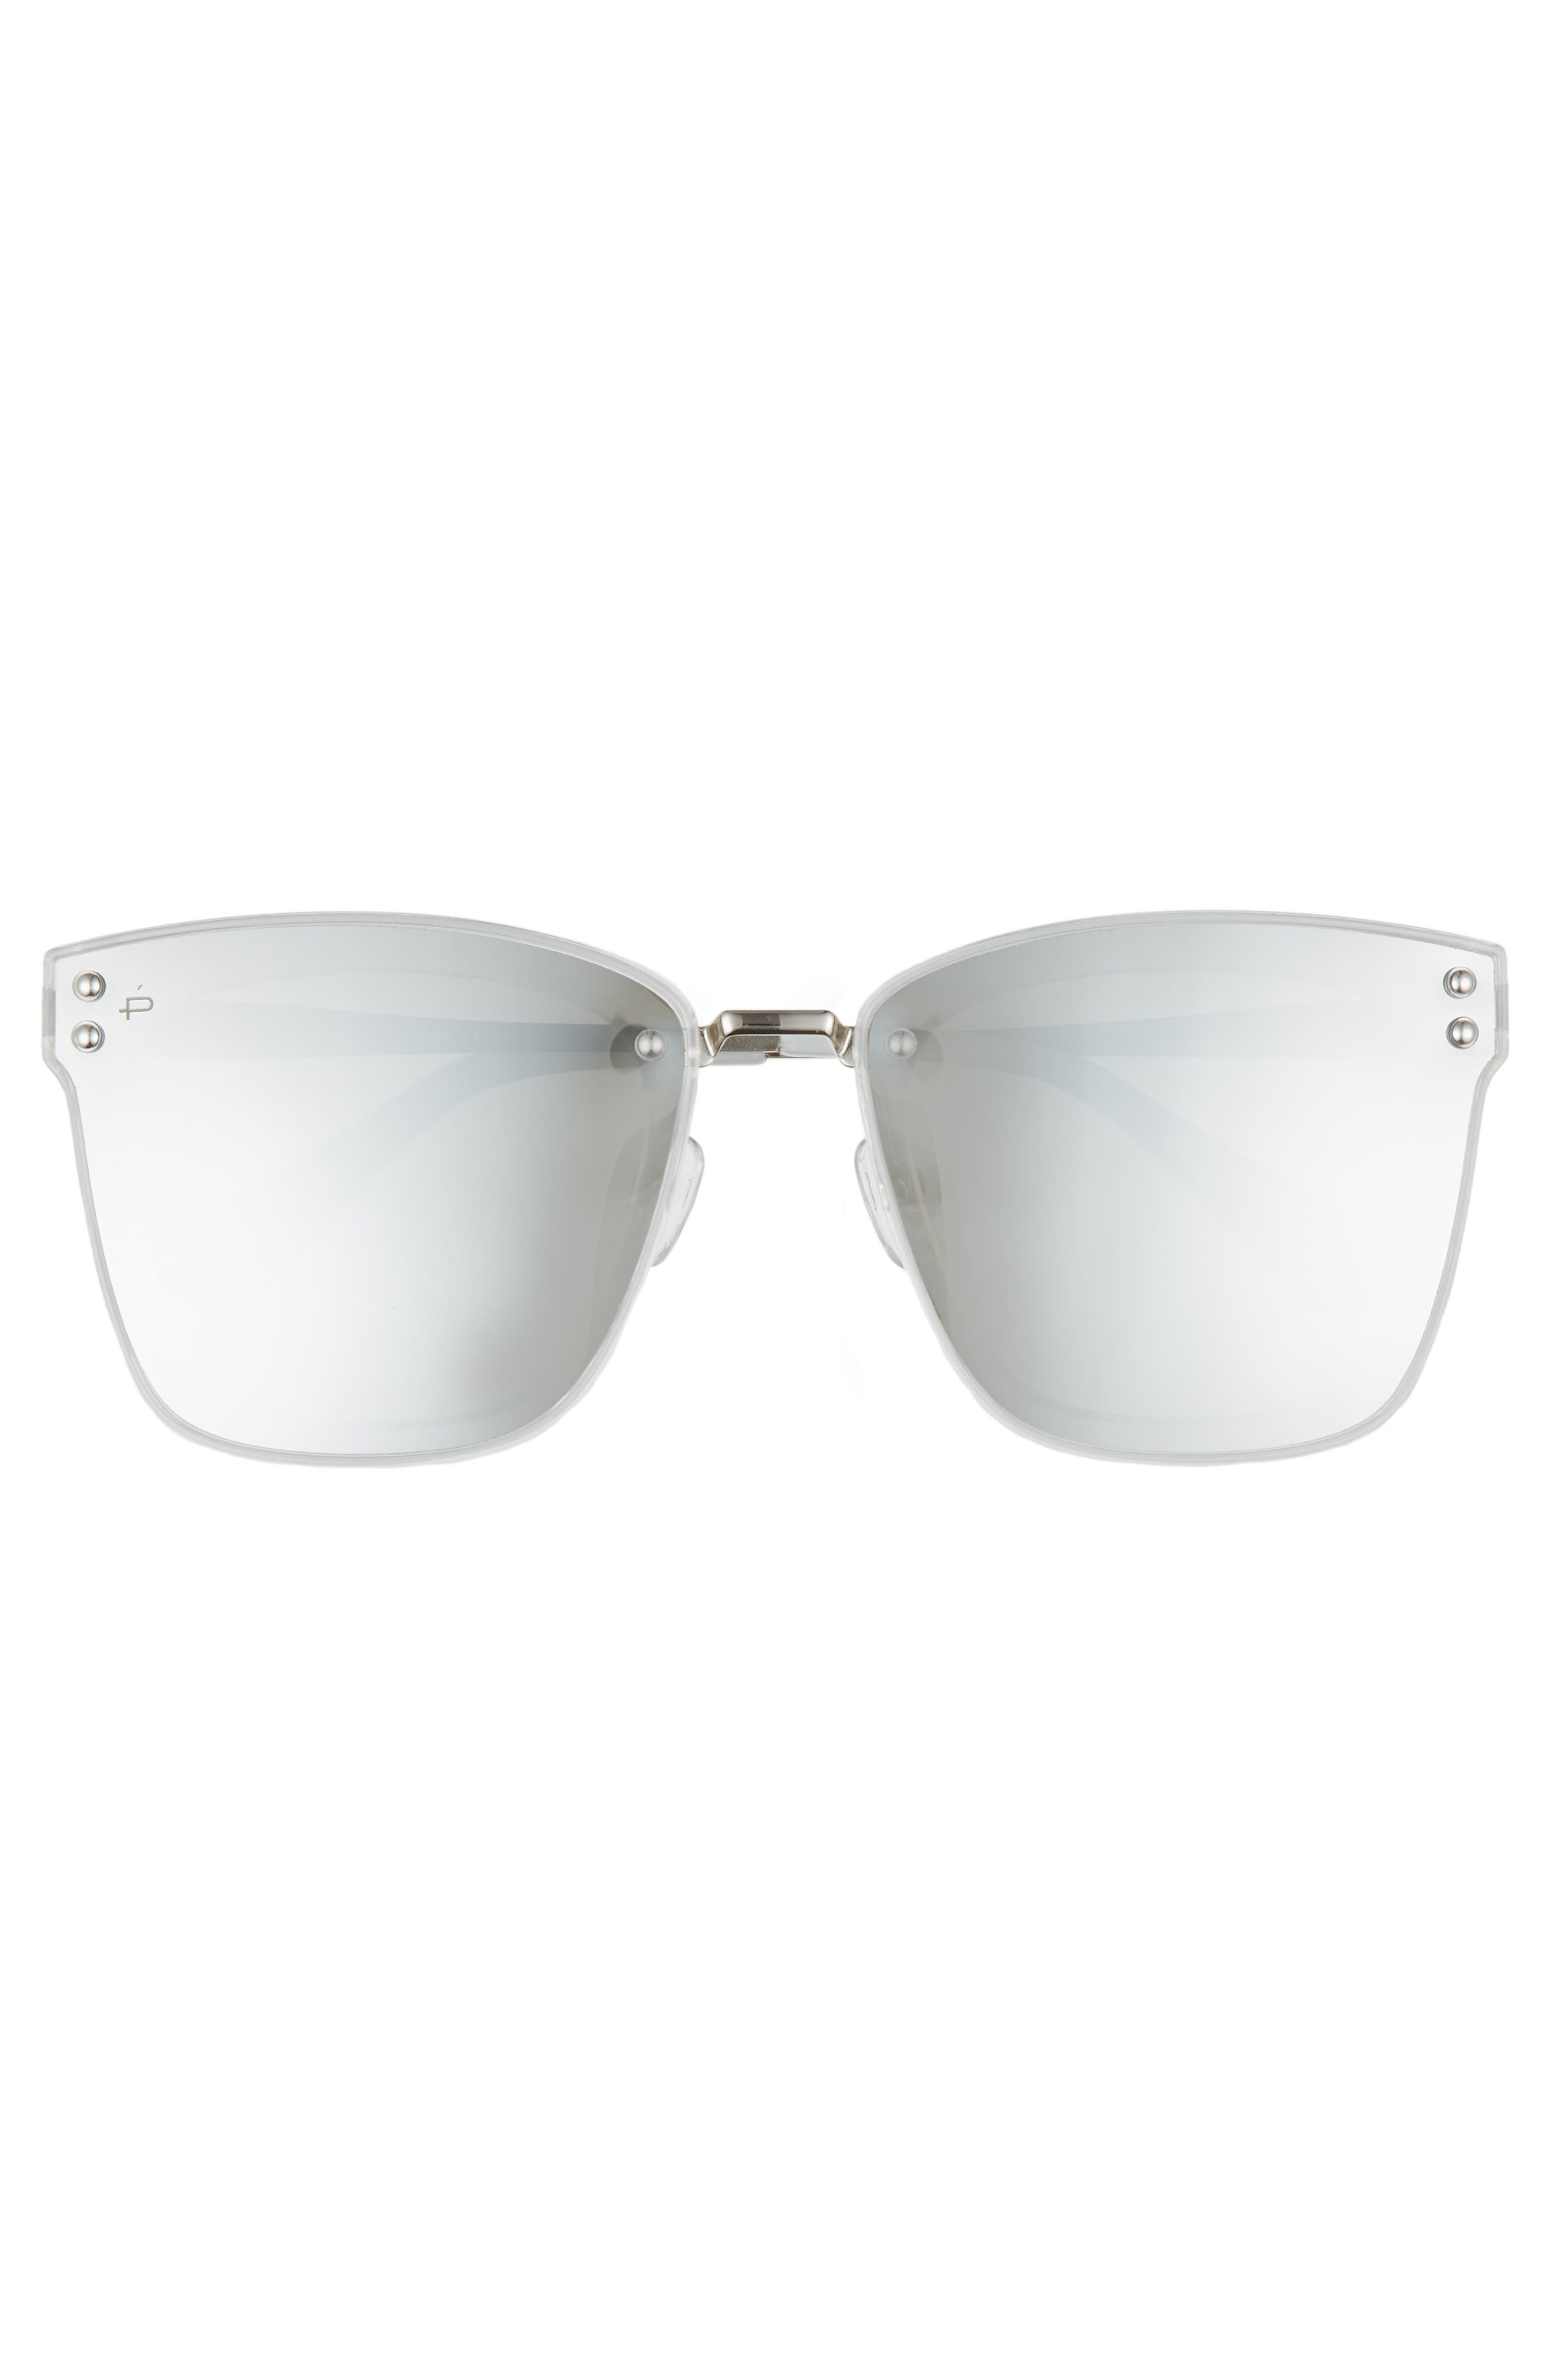 The Nasty Woman 50mm Square Sunglasses,                             Alternate thumbnail 3, color,                             040